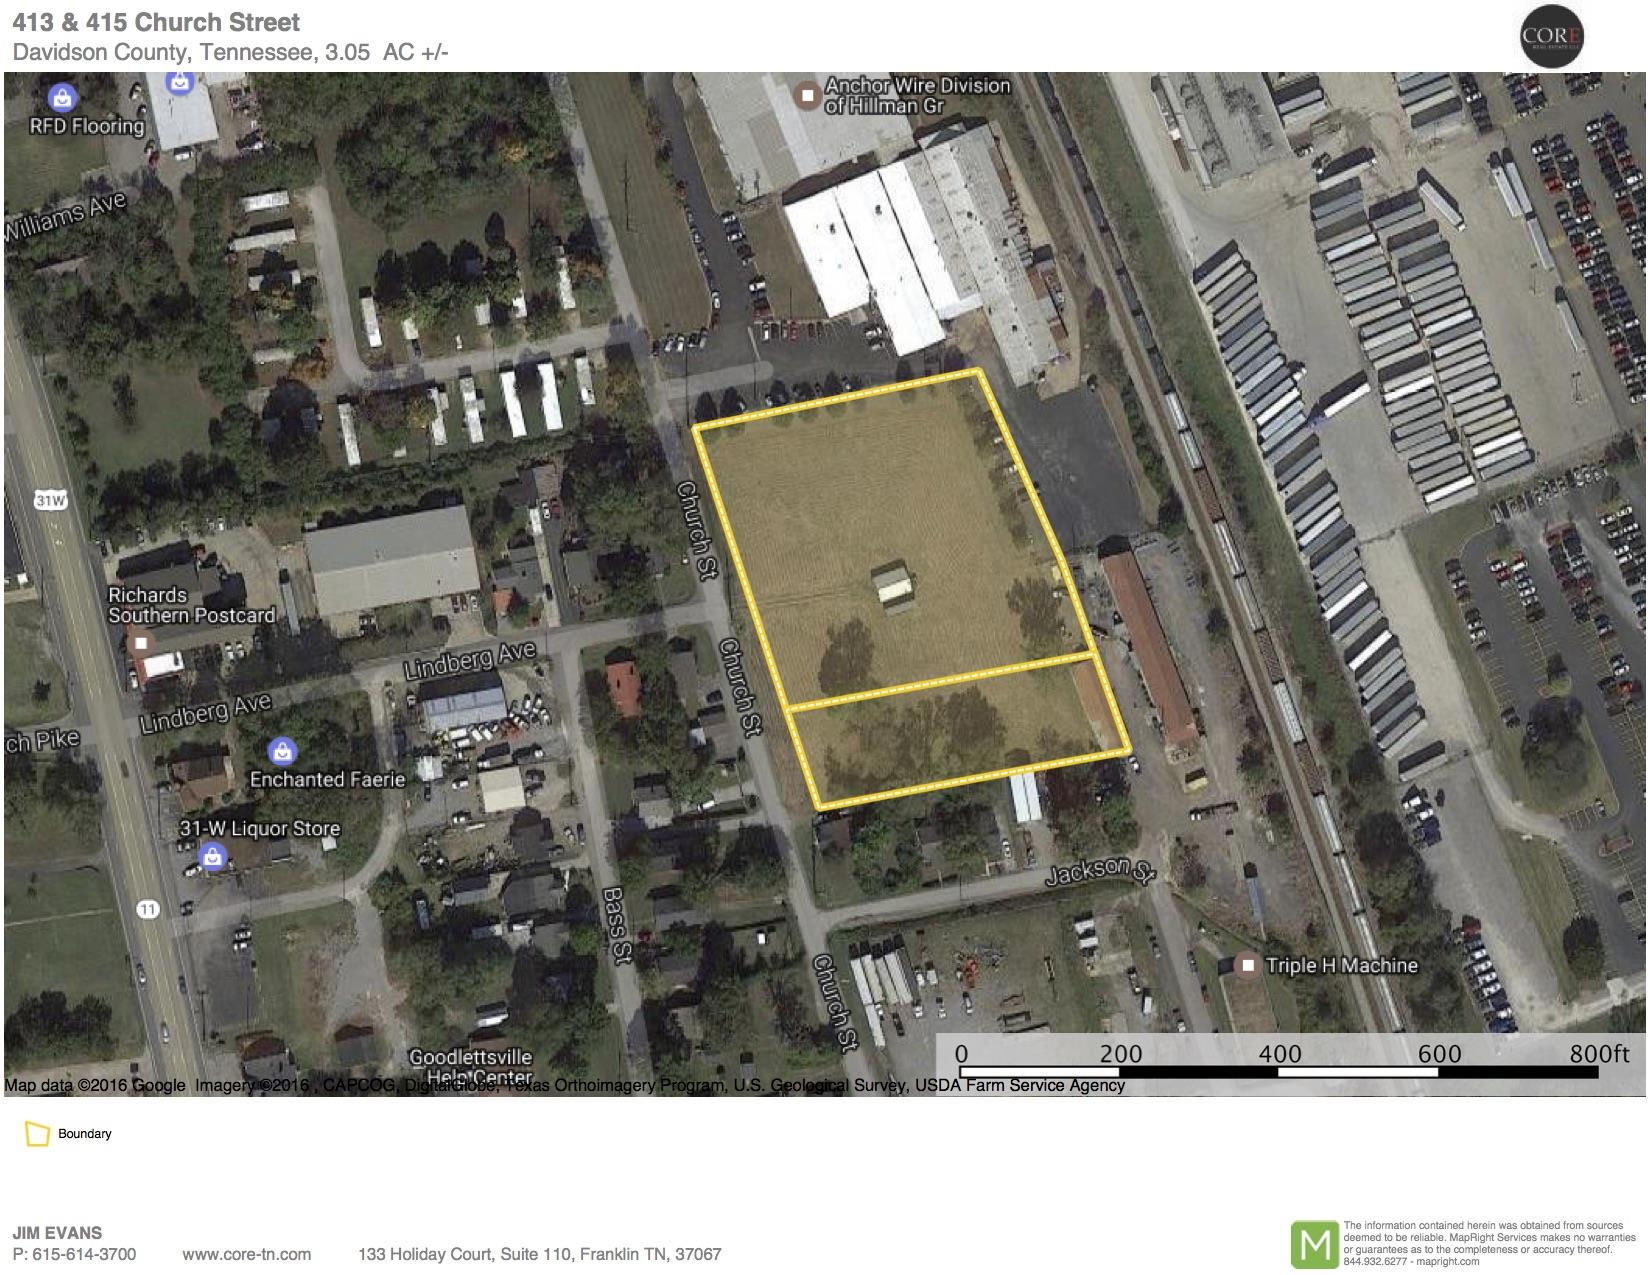 Image of  for Sale near Goodlettsville, Tennessee, in Davidson County: 3.05 acres